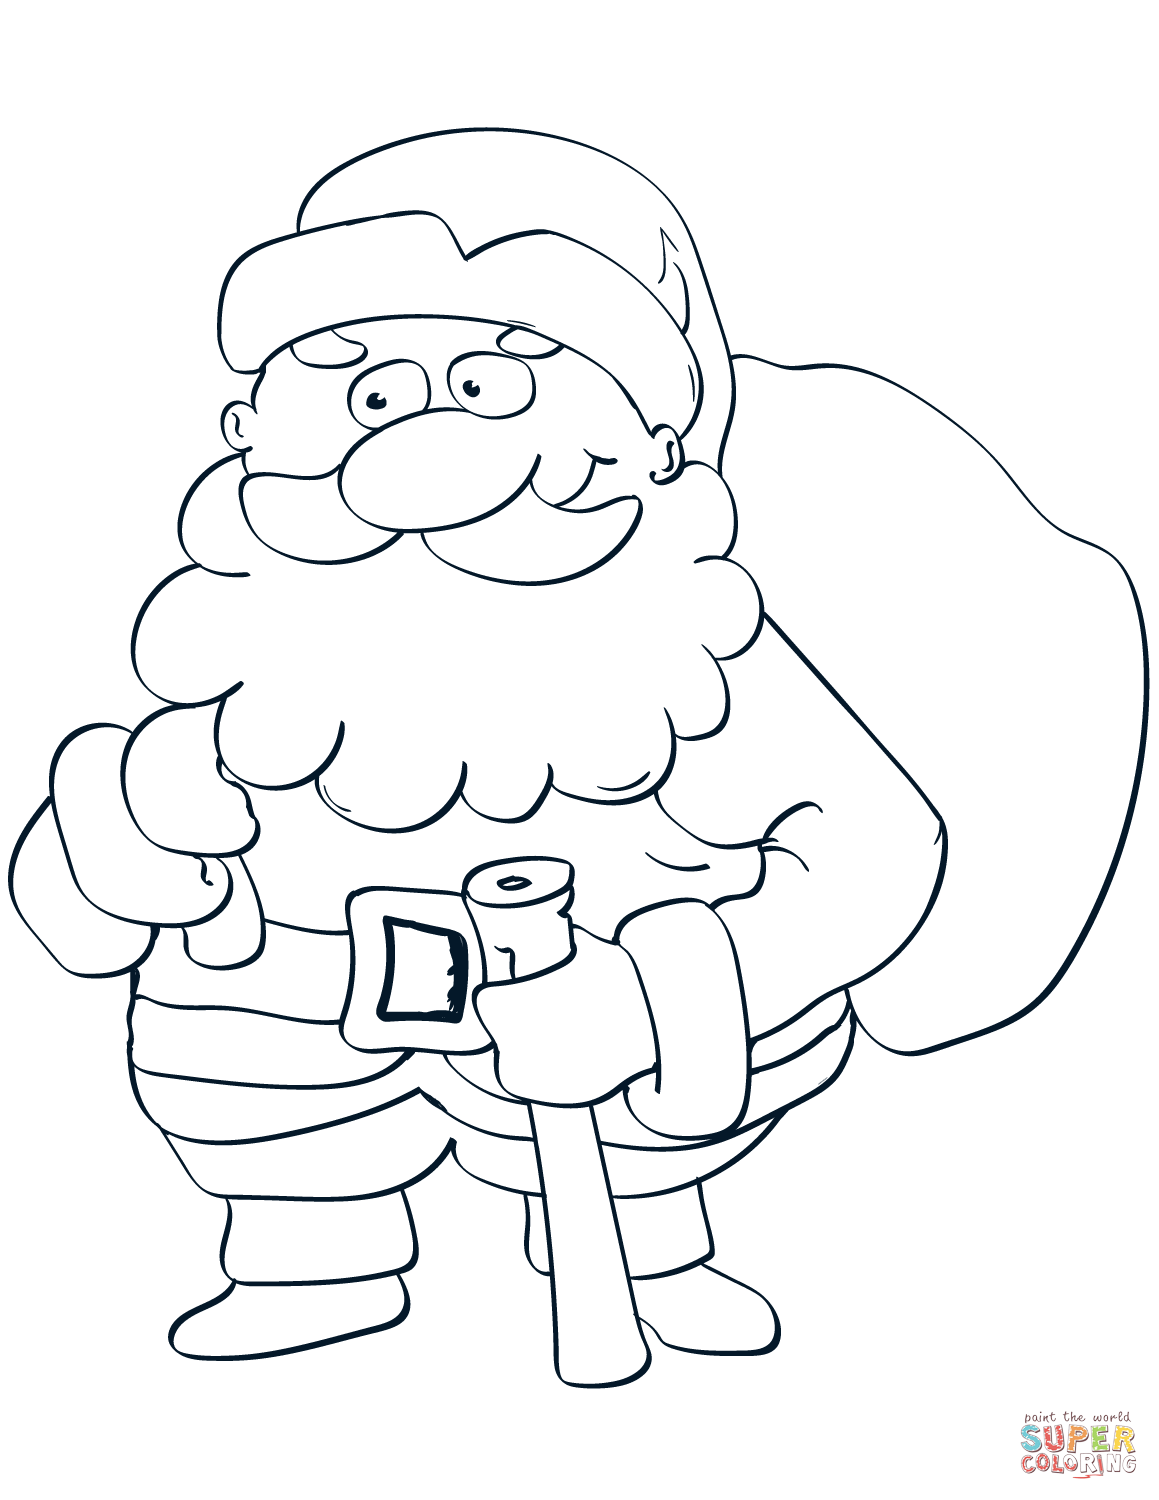 Santa Claus With Bag And Stick Coloring Page